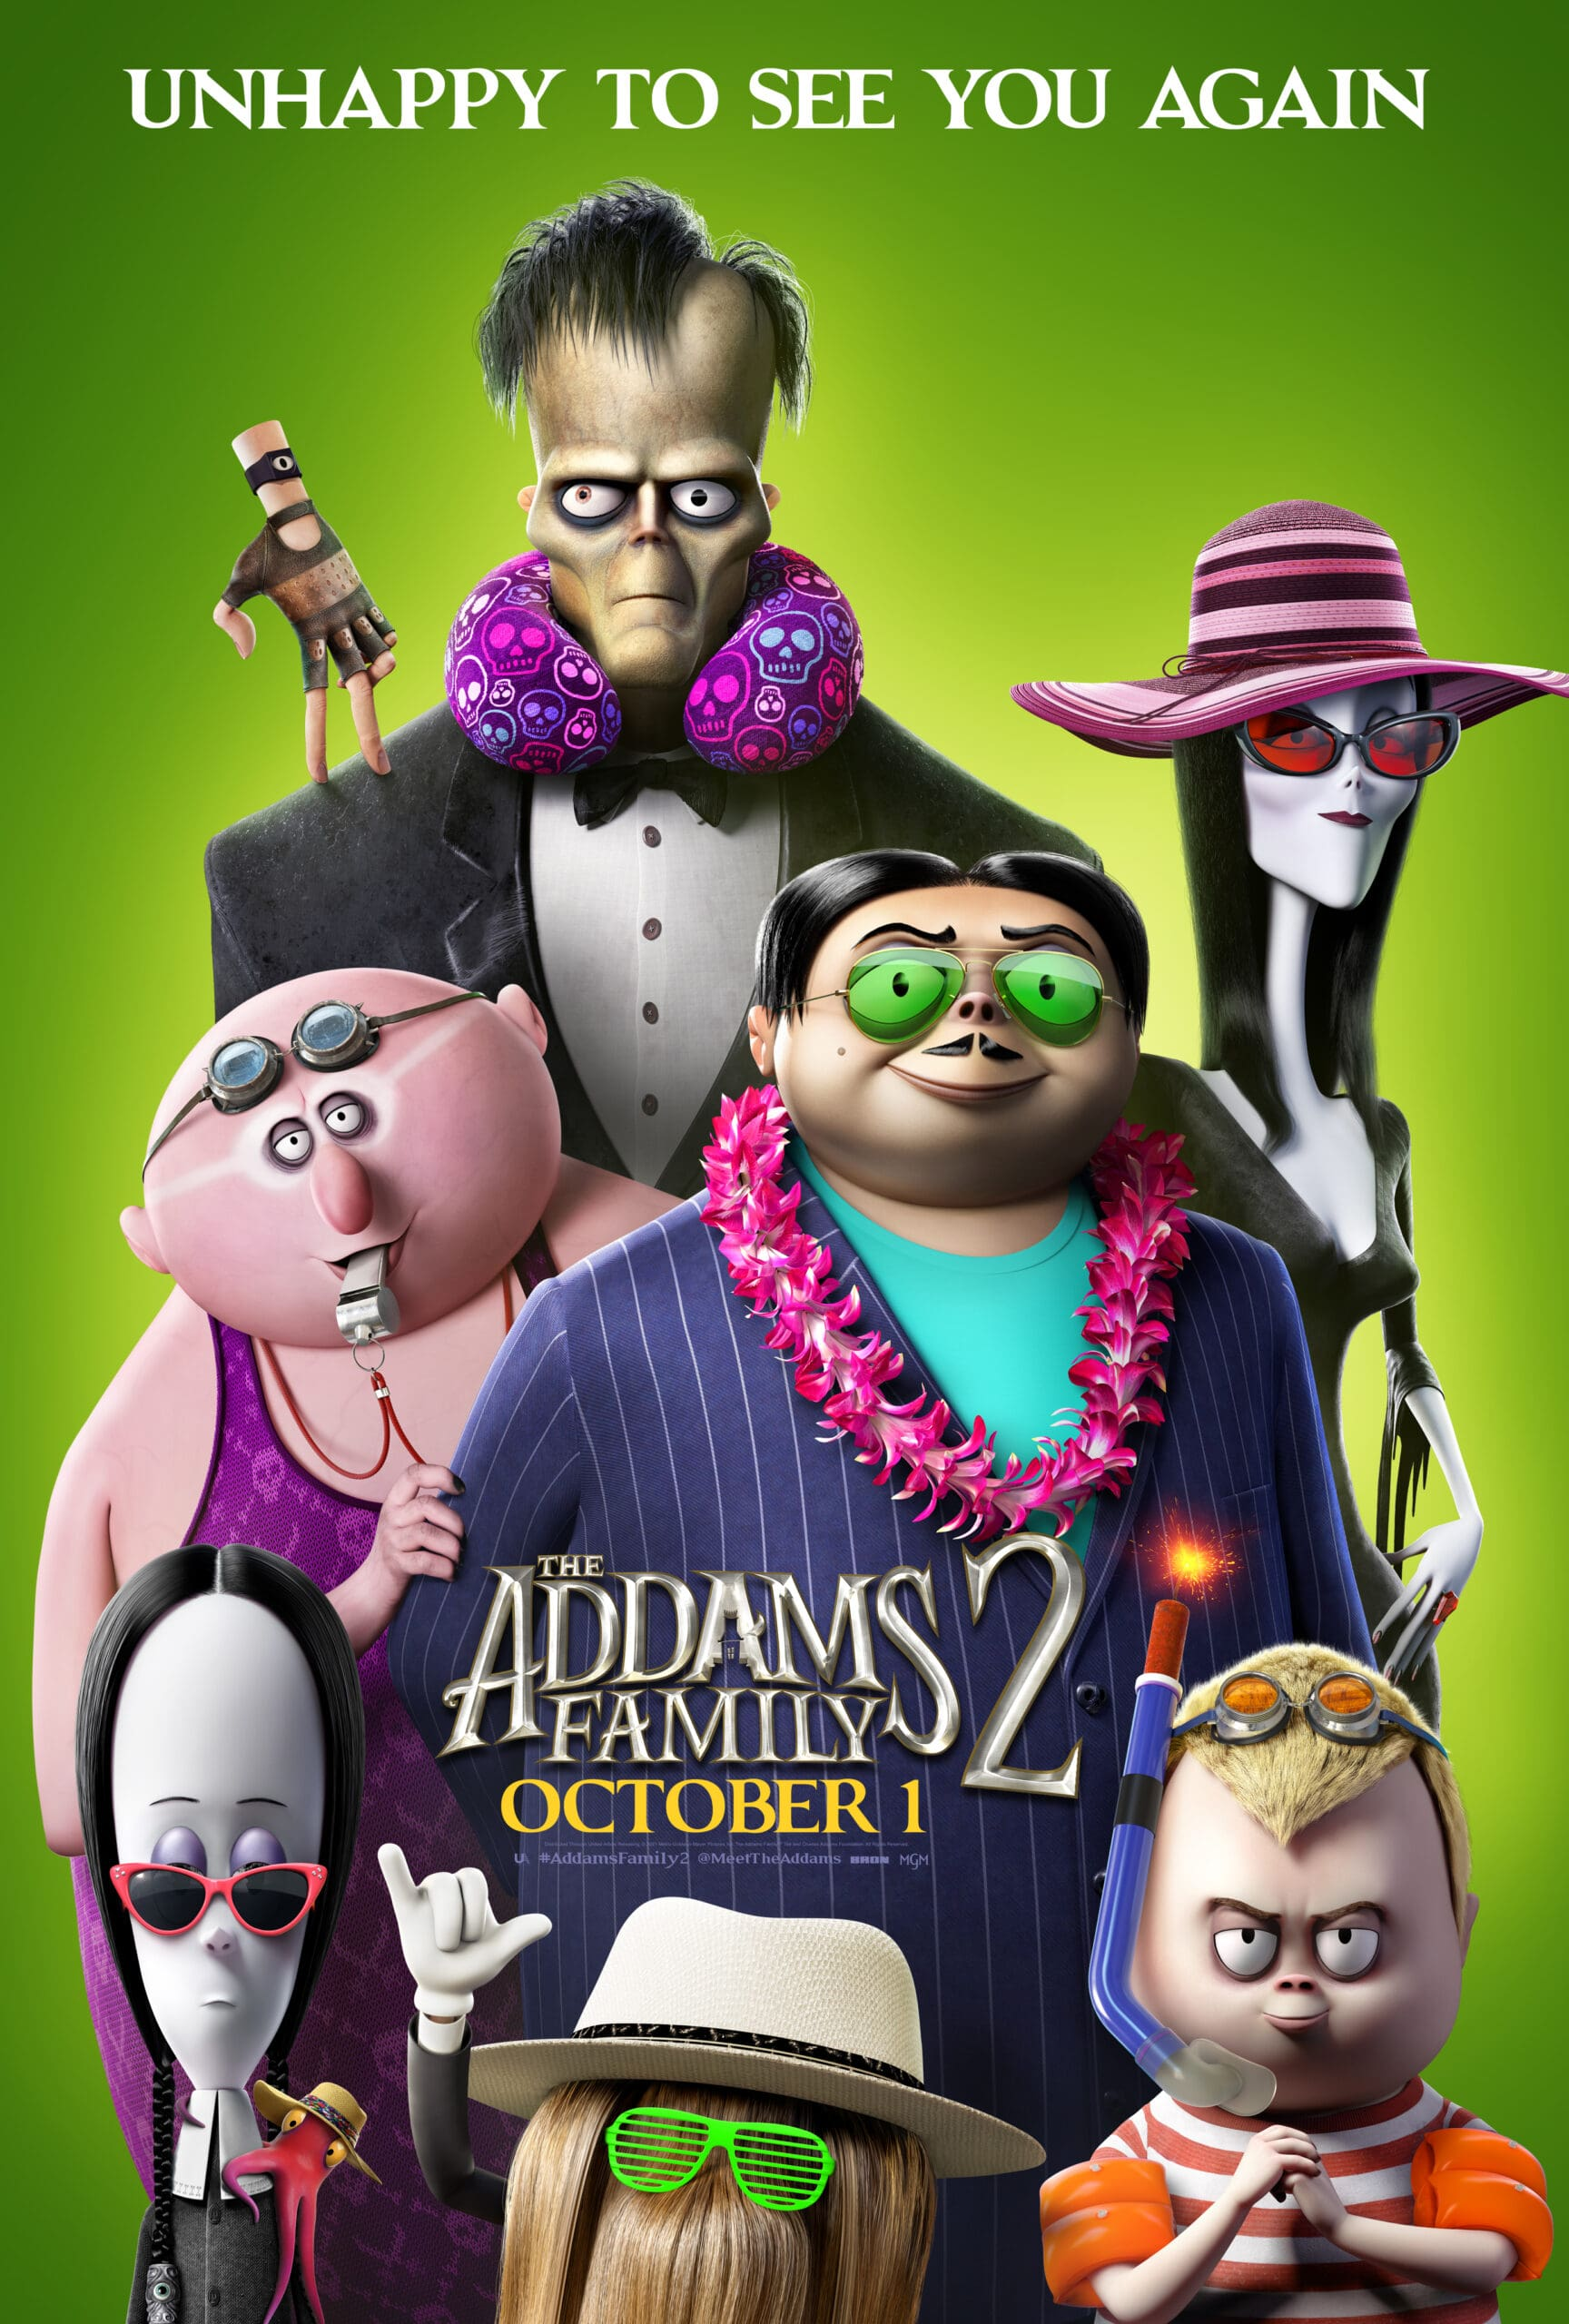 The Addams Family 2 Poster